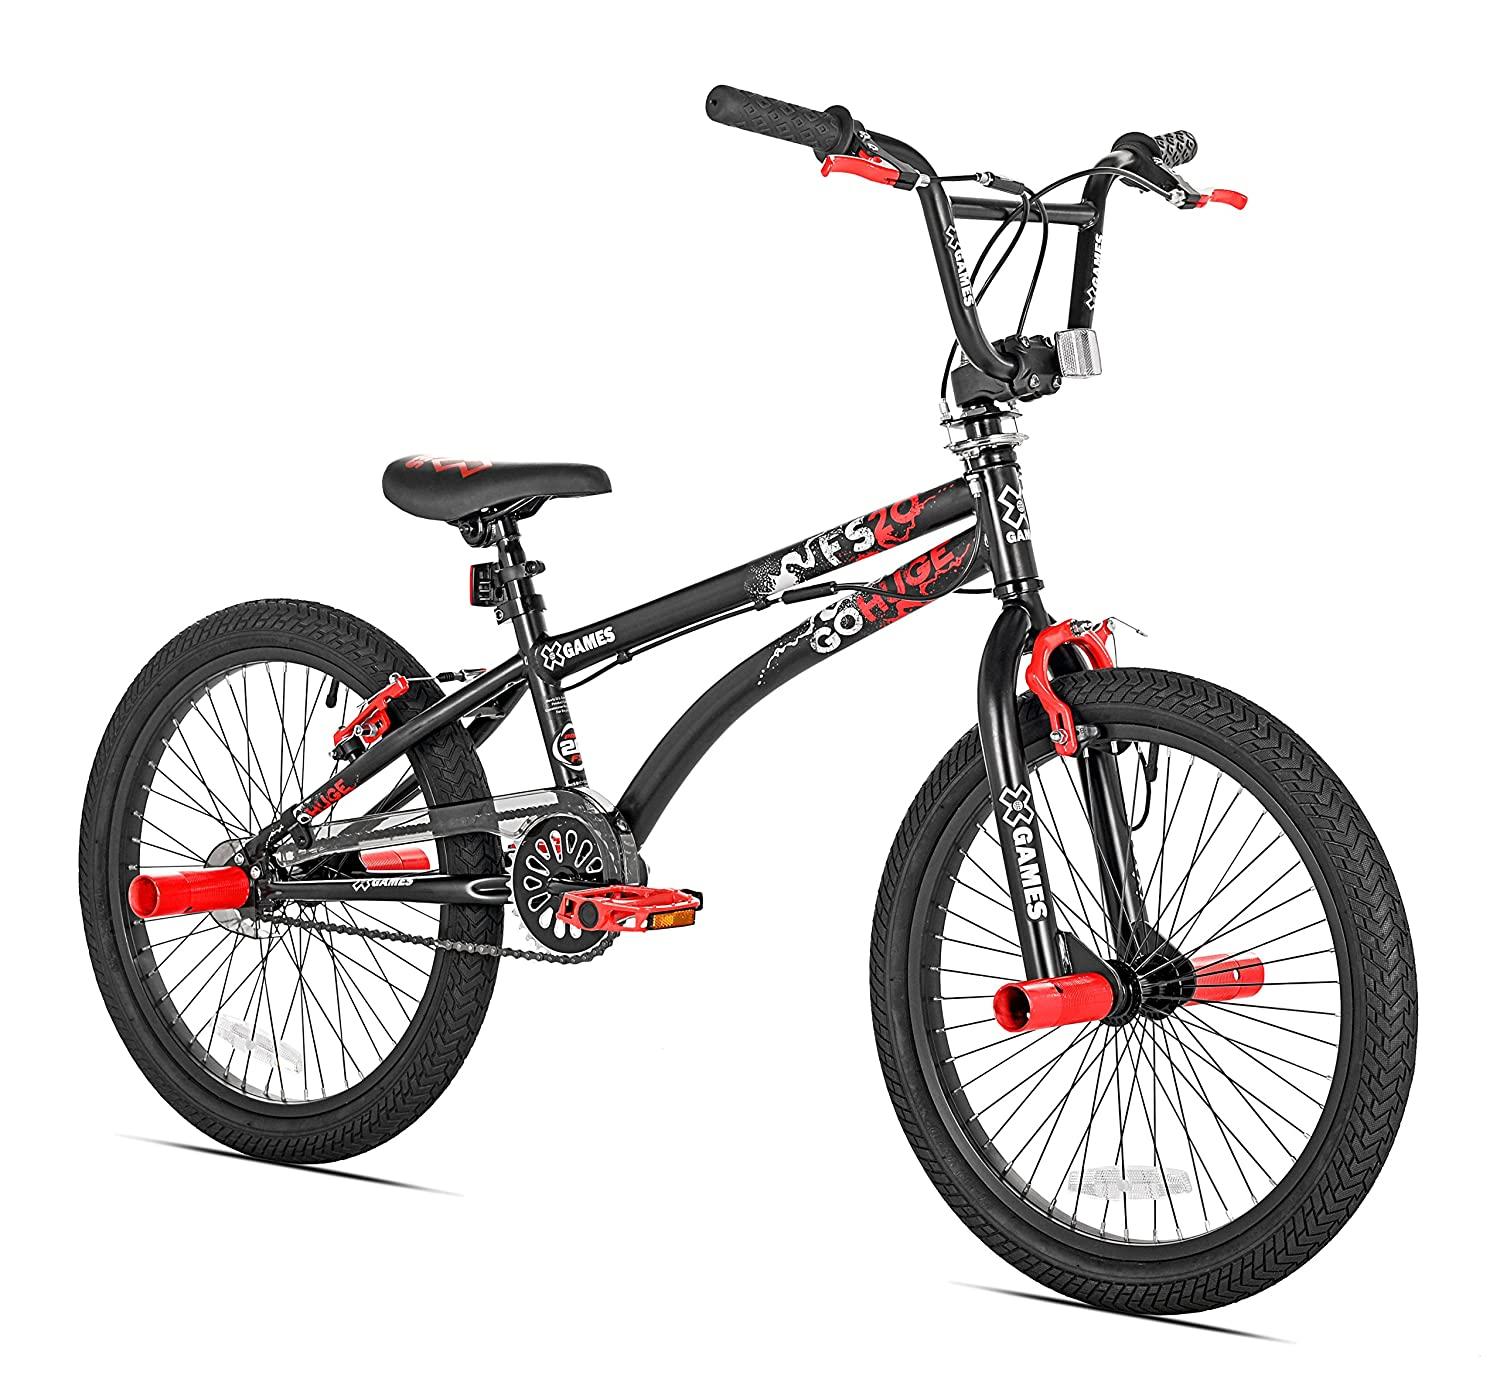 Bikes for 7 to 9 Year Olds